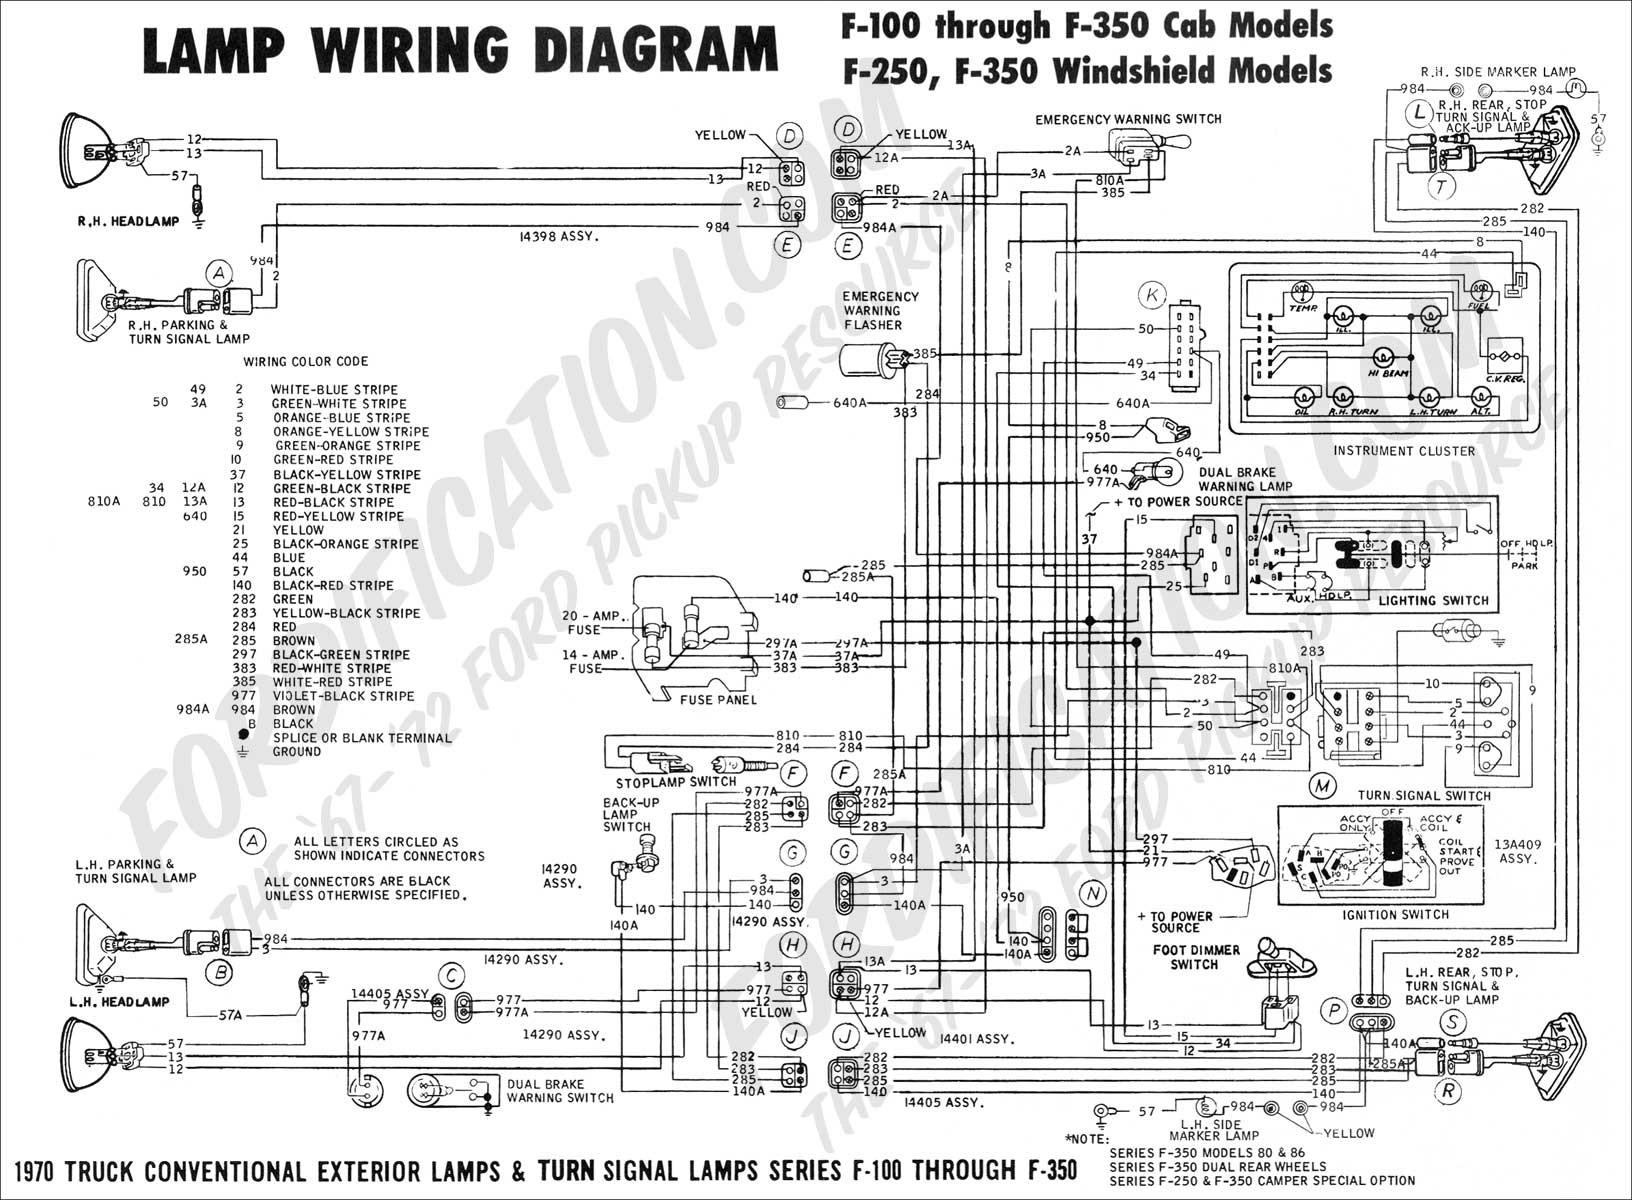 1994 ford f150 wiring diagram my wiring diagram rh detoxicrecenze com